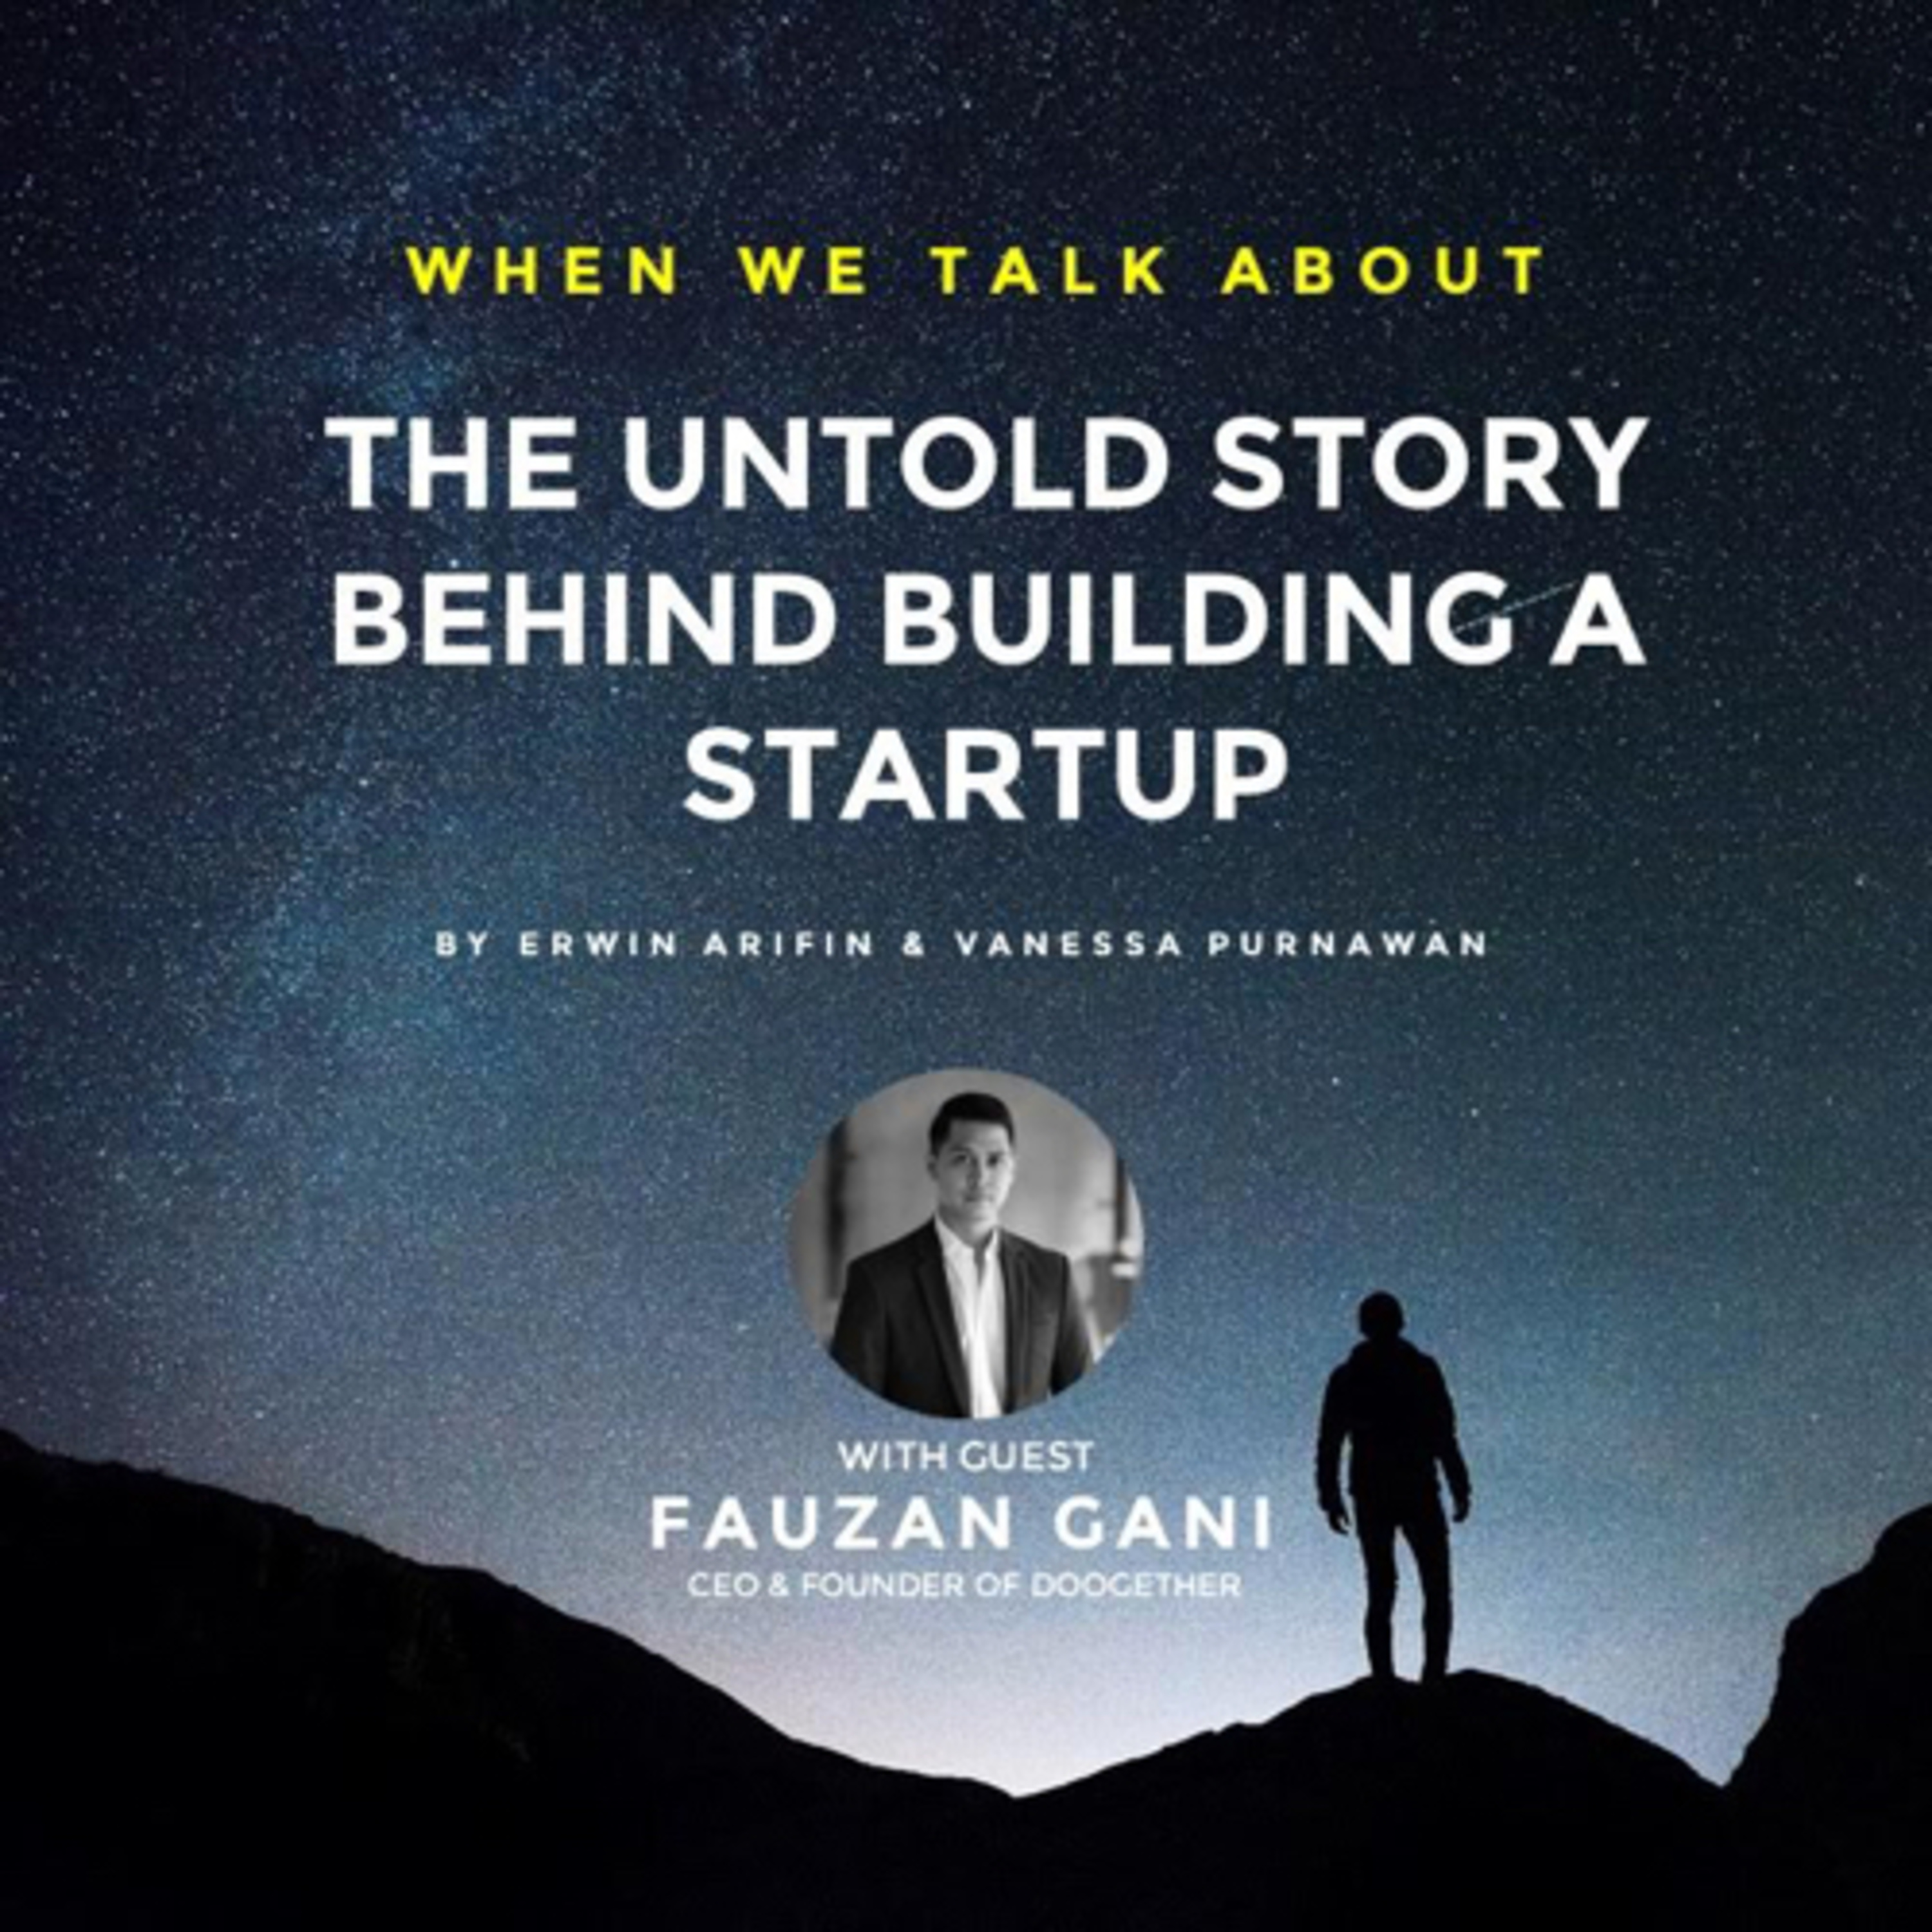 The Untold Story Behind Building a Startup